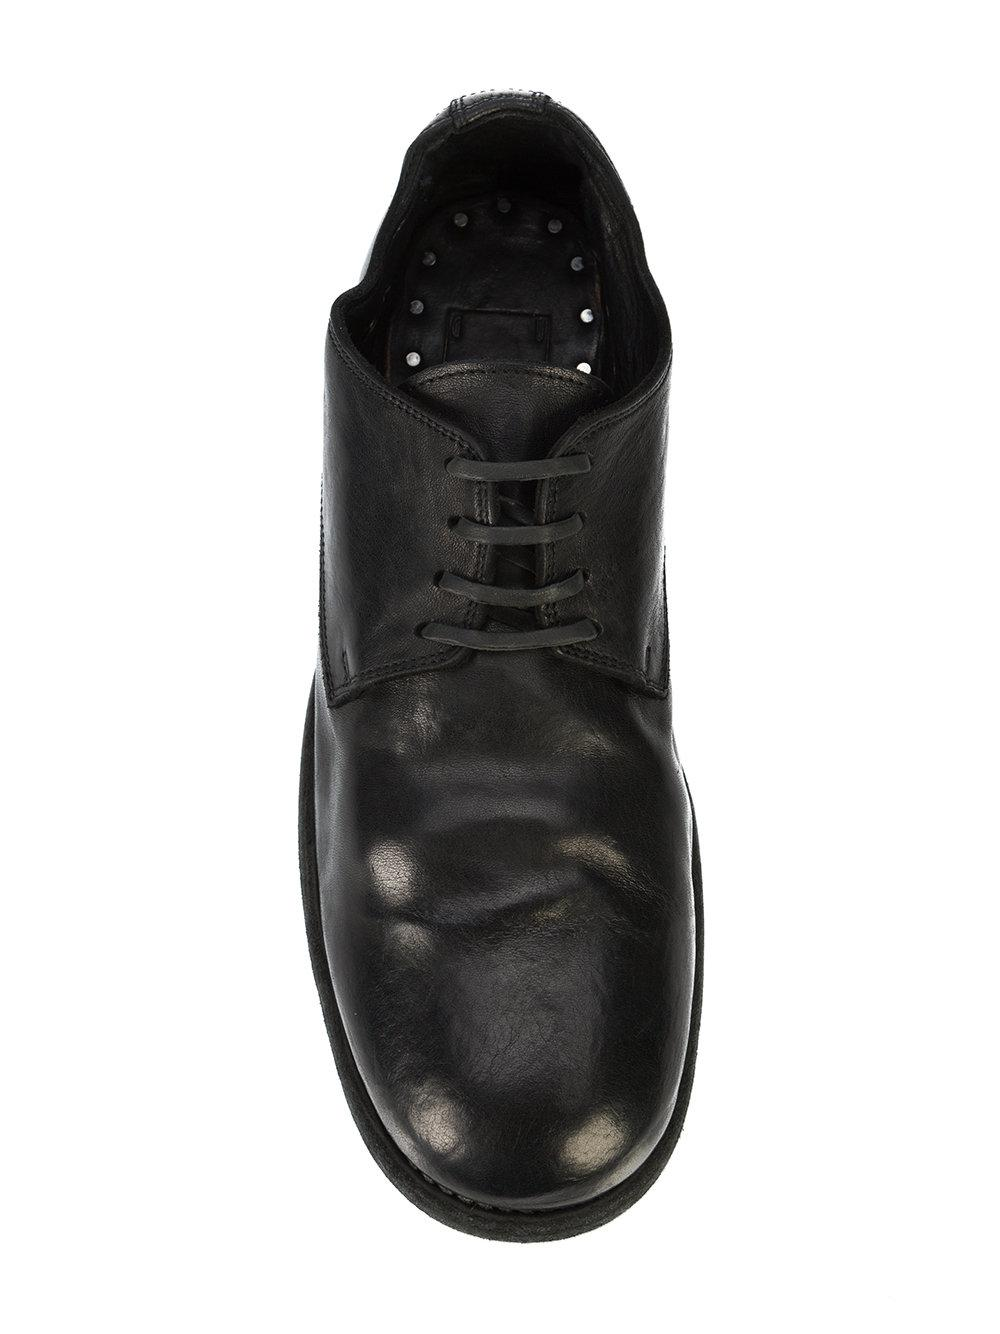 Guidi Leather Men's 992 Horse Classic Derby in Black for Men